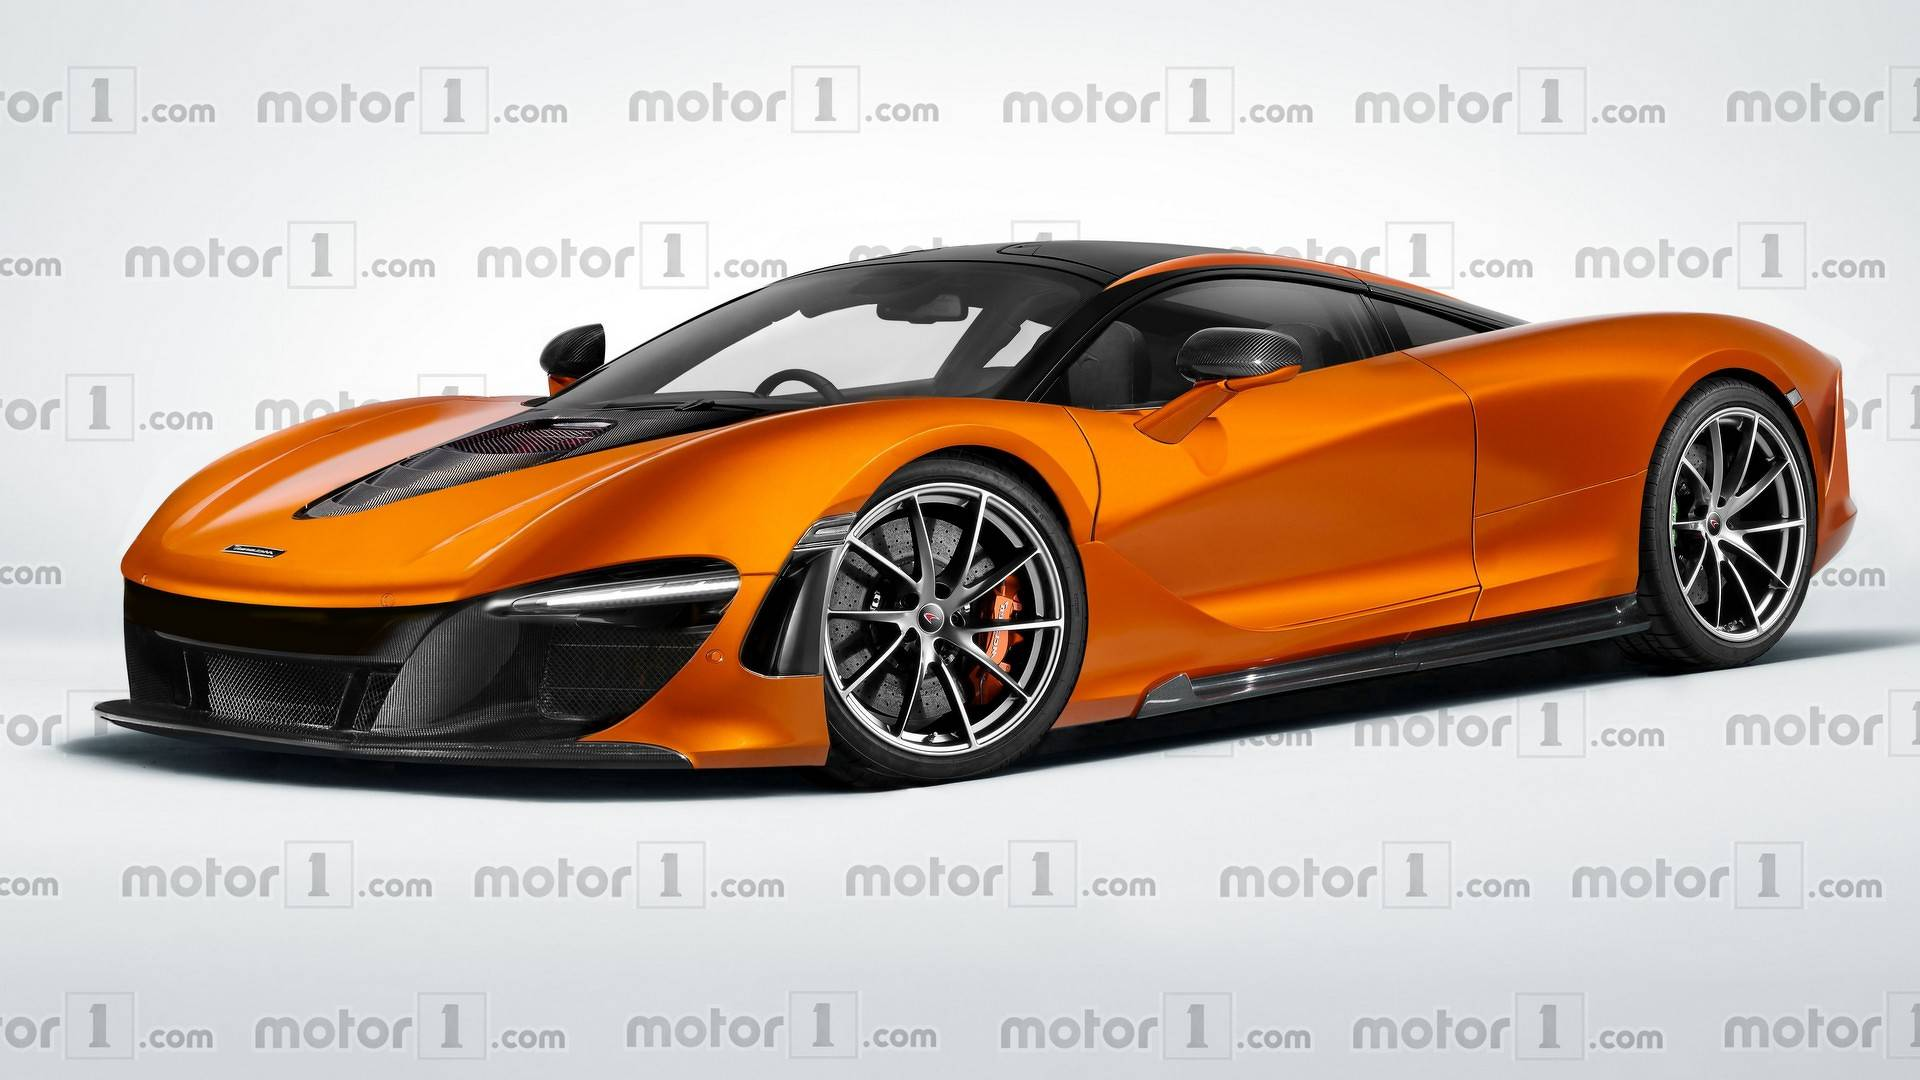 mclaren tested rear drive speedtail that hit 62 mph in 2 sec